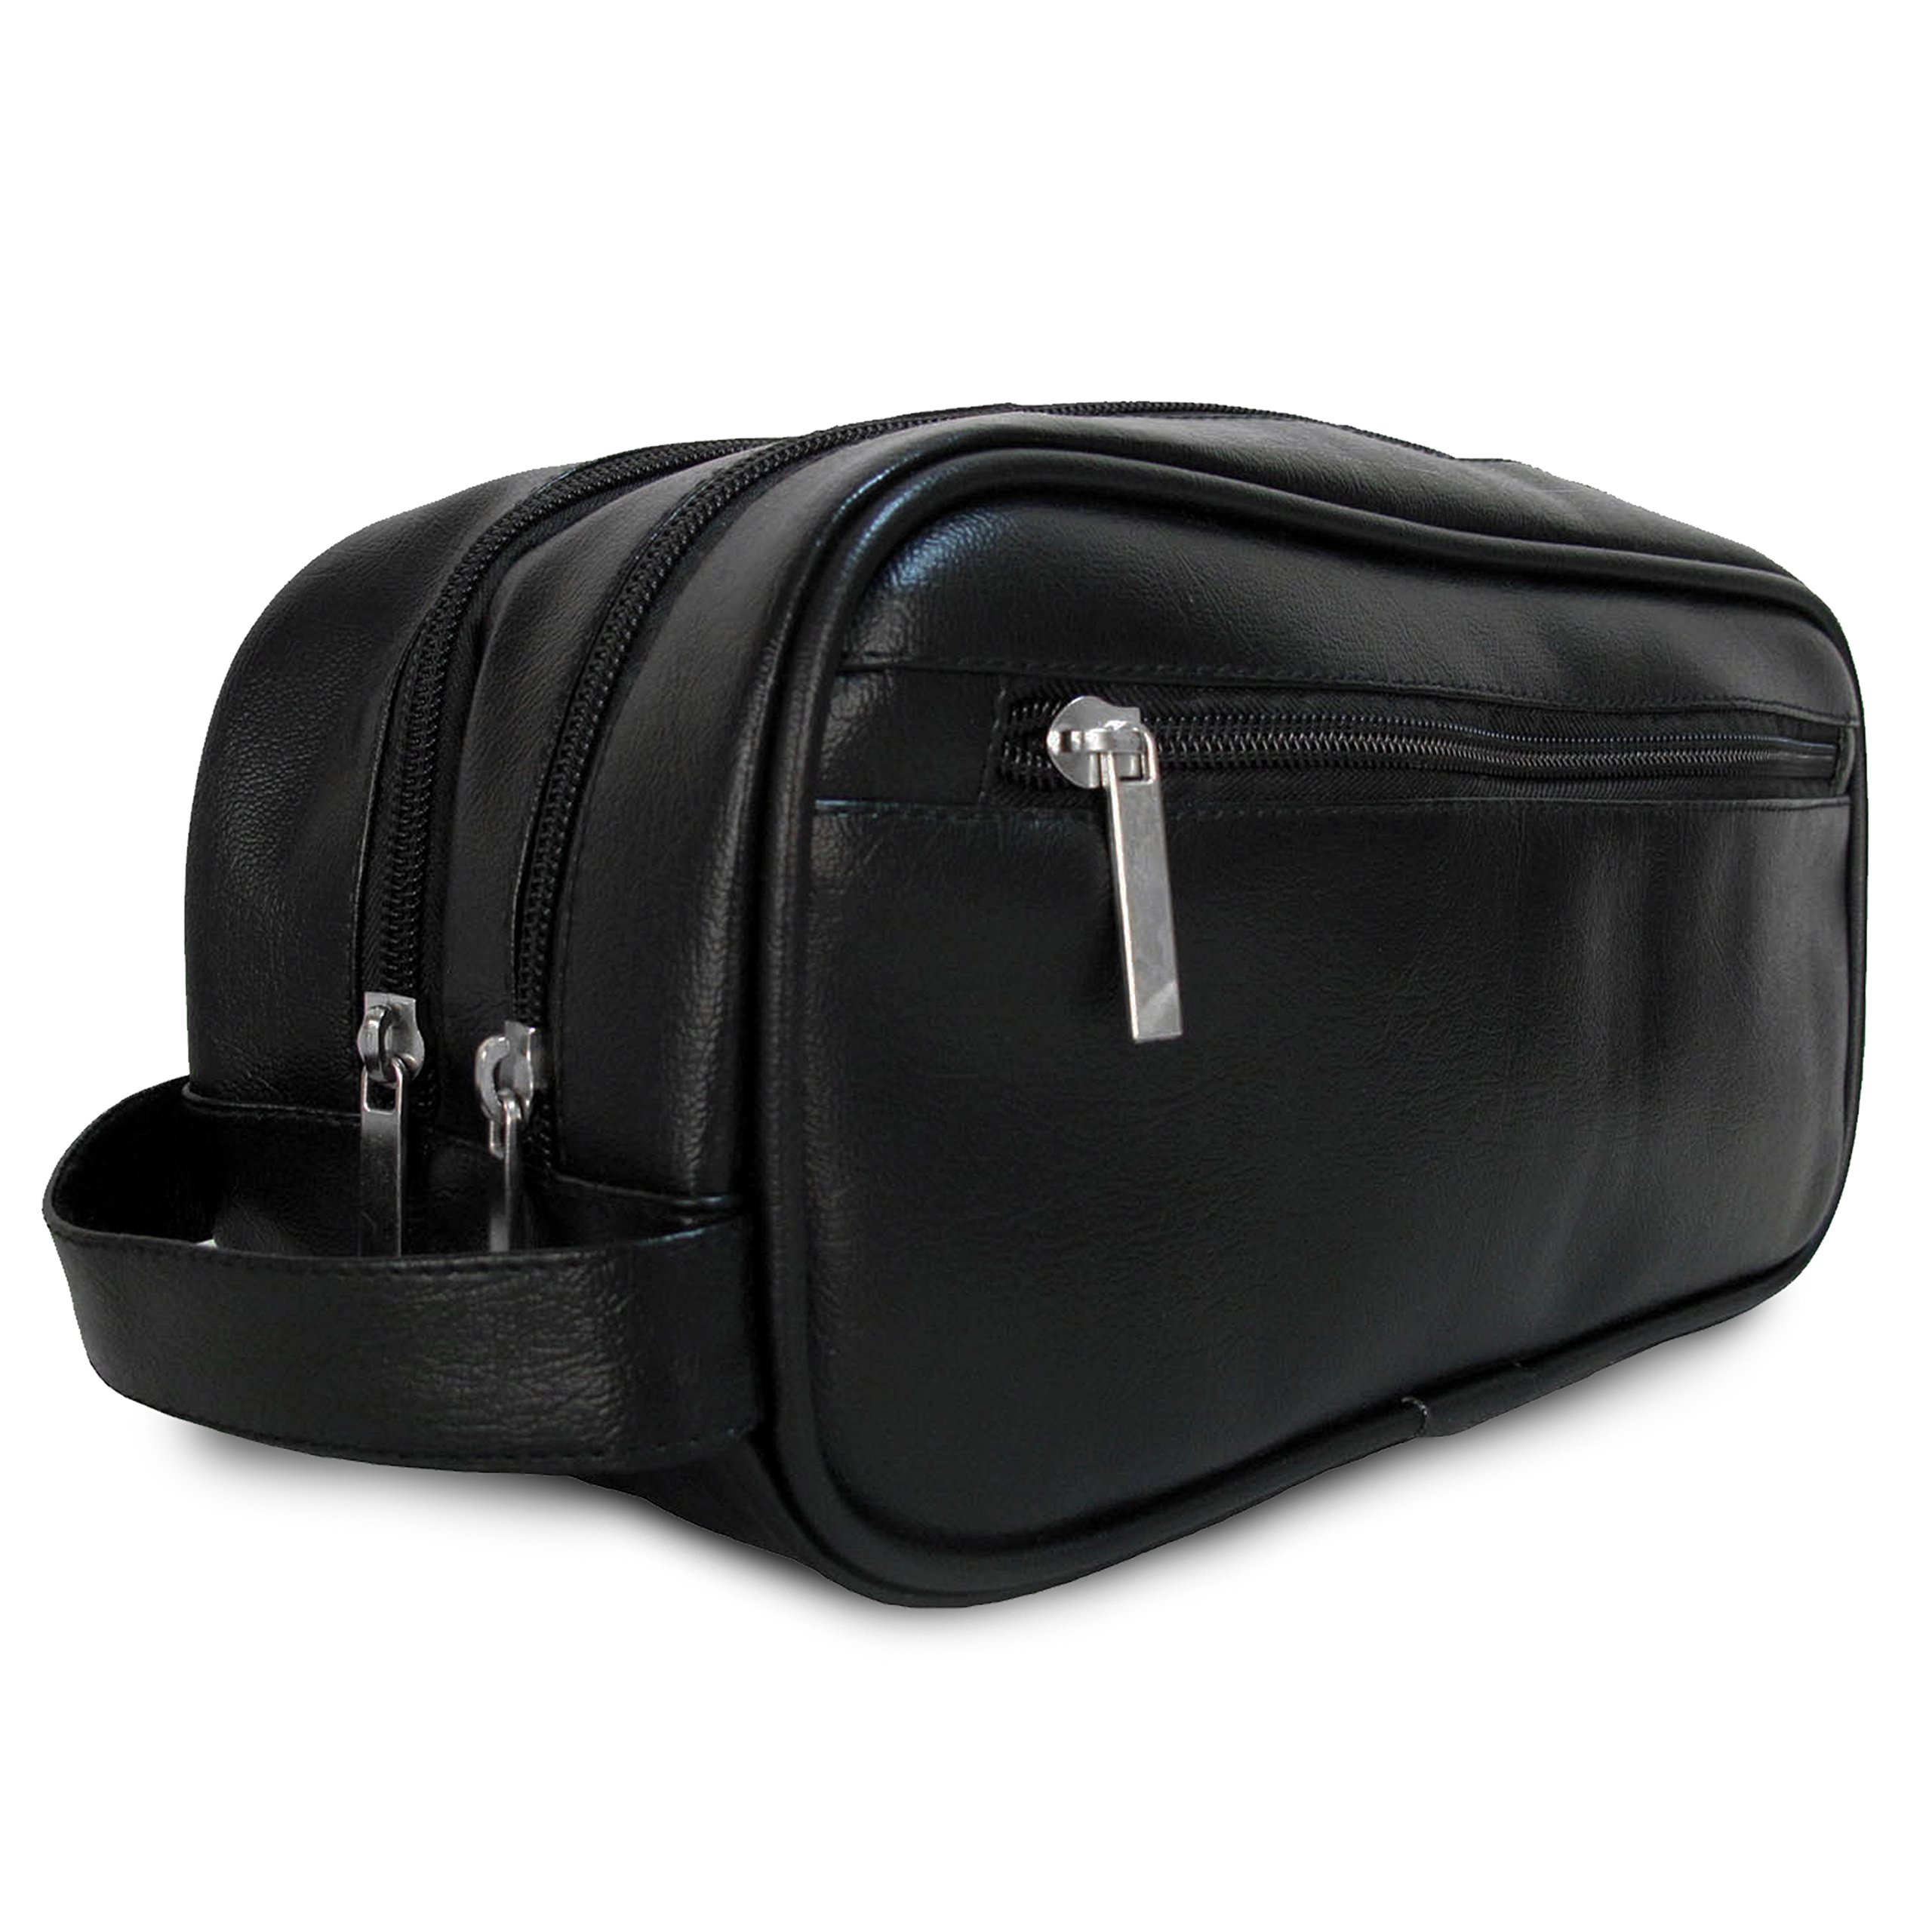 Mister Bag Leather Travel Toiletry Bag for Men or Women Waterproof. Travel Size Toiletries Bag Toilet Organizer Supply Two Compartments Perfect For Men's Travel Toiletry Bag Shaving Grooming Dopp Kit